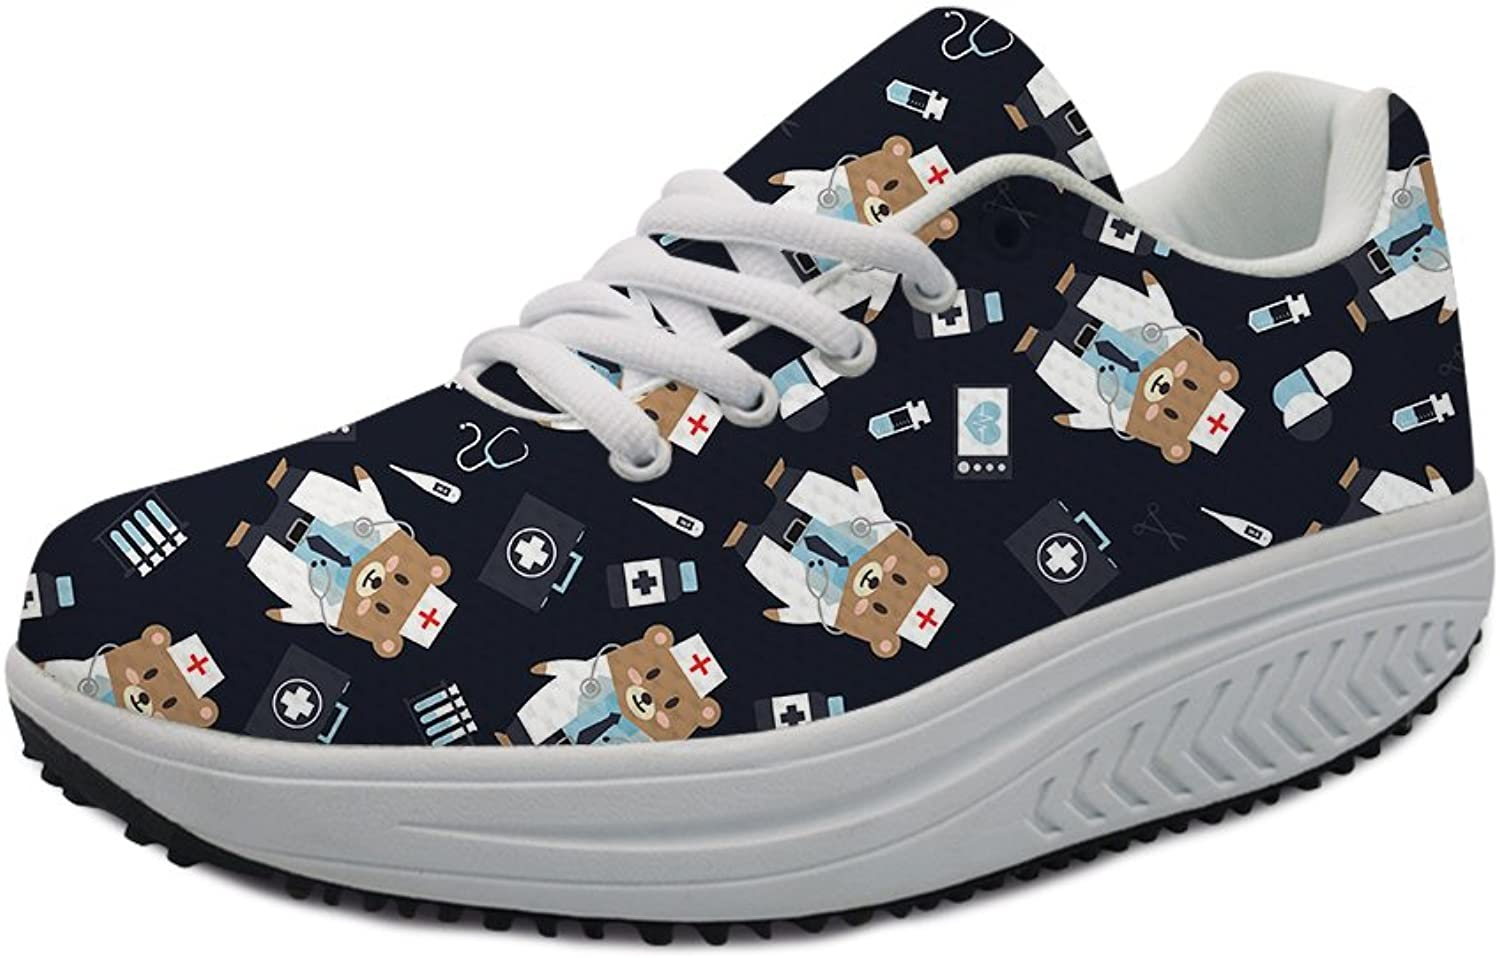 Fashion Cartoon Bear Printing Fitness Walking Sneaker Casual Women's Wedges Platform shoes